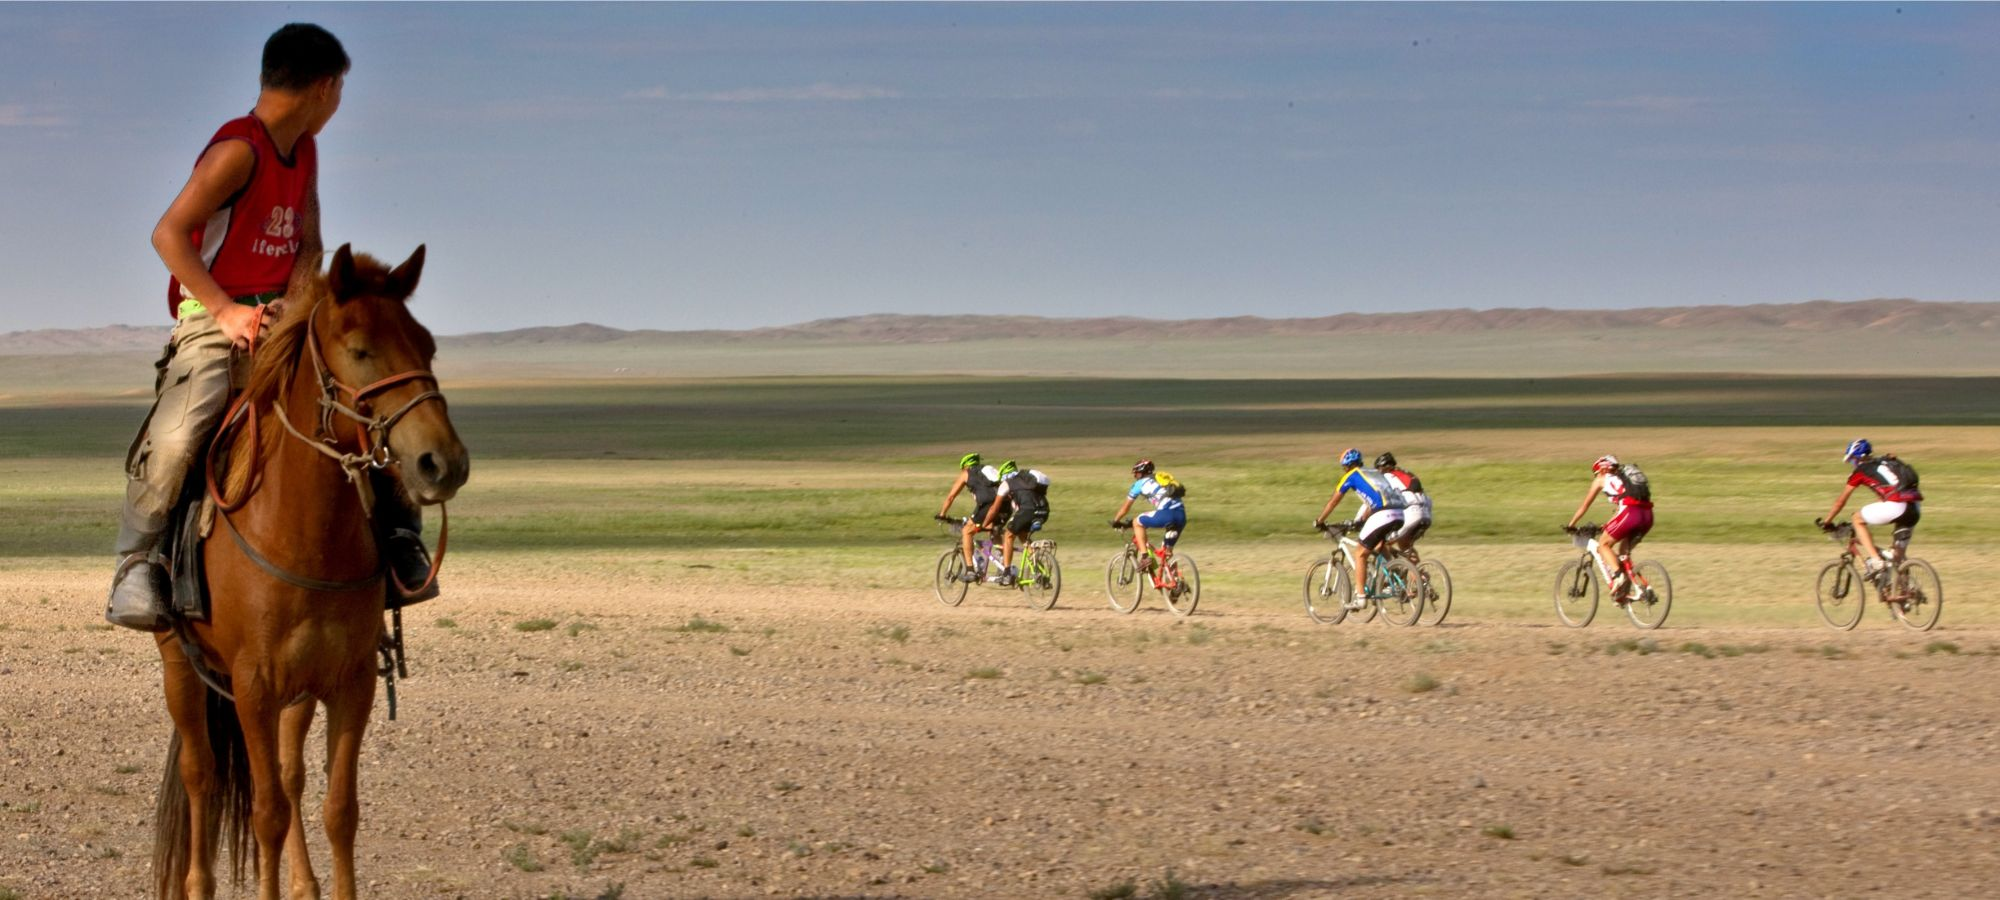 Photos from our Mongolia Gobi Cycling Holiday